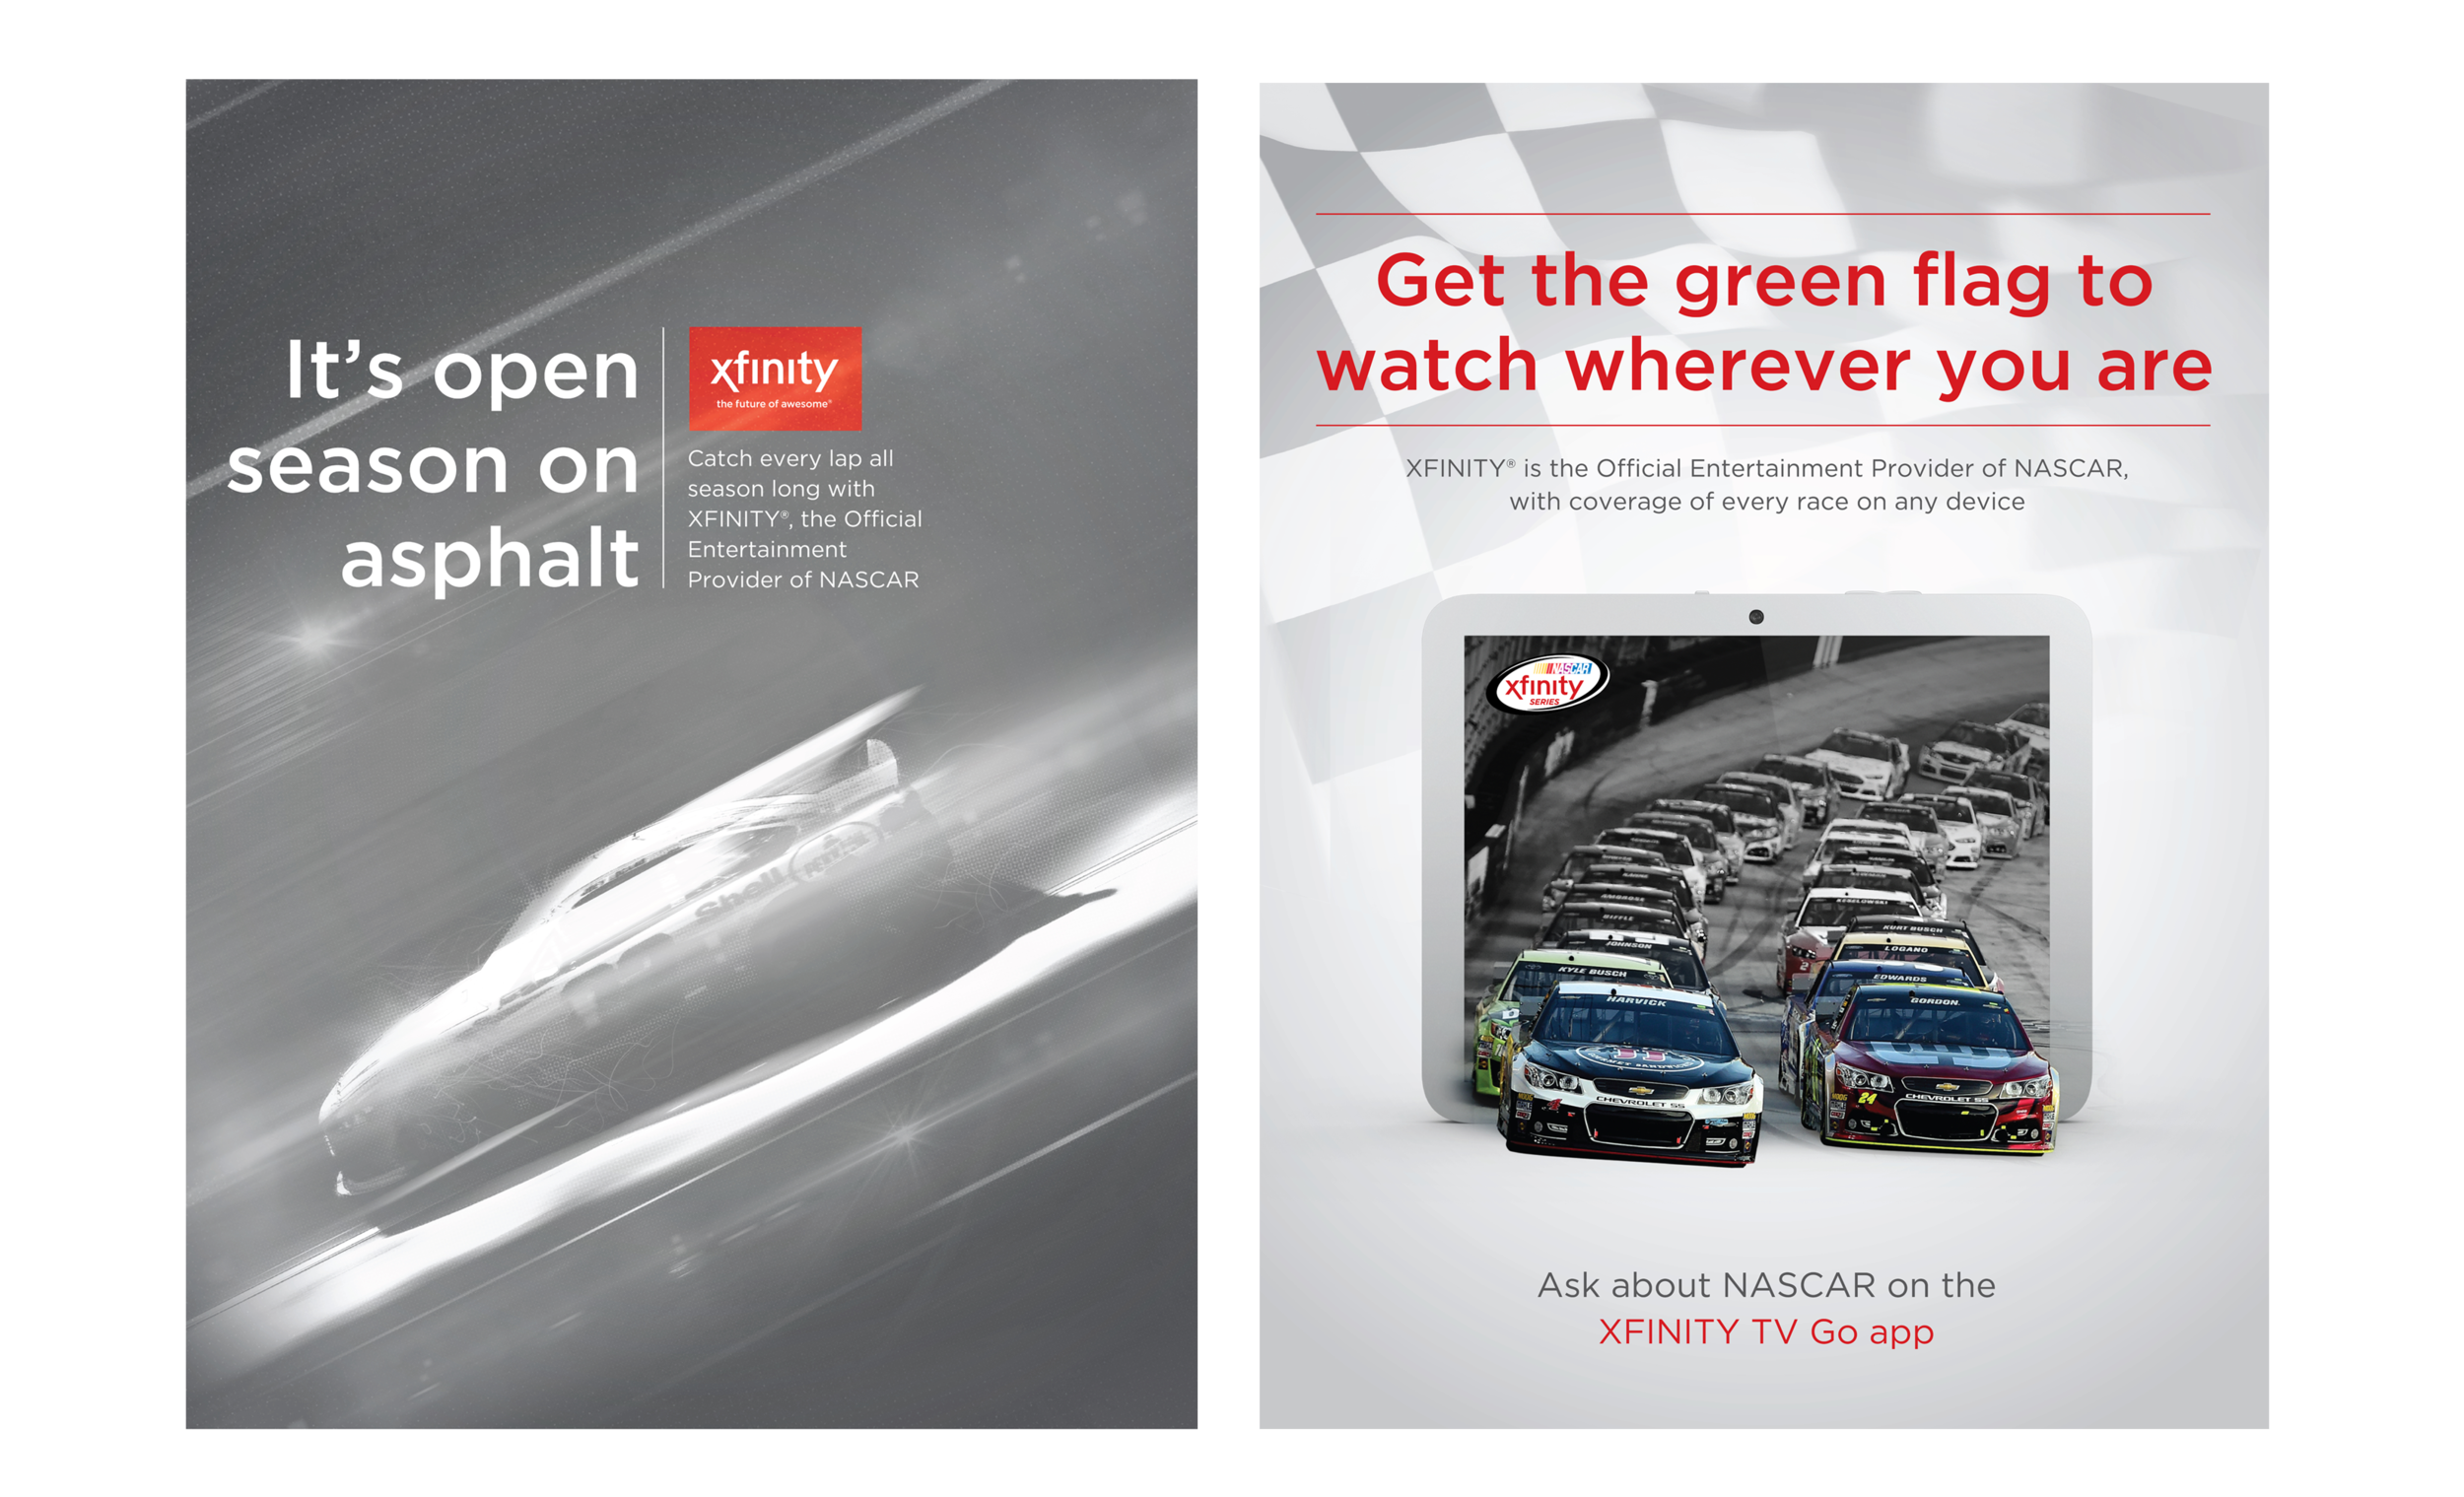 COMCAST XFINITY NASCAR PROMOTION POSTERS (CONCEPTS)